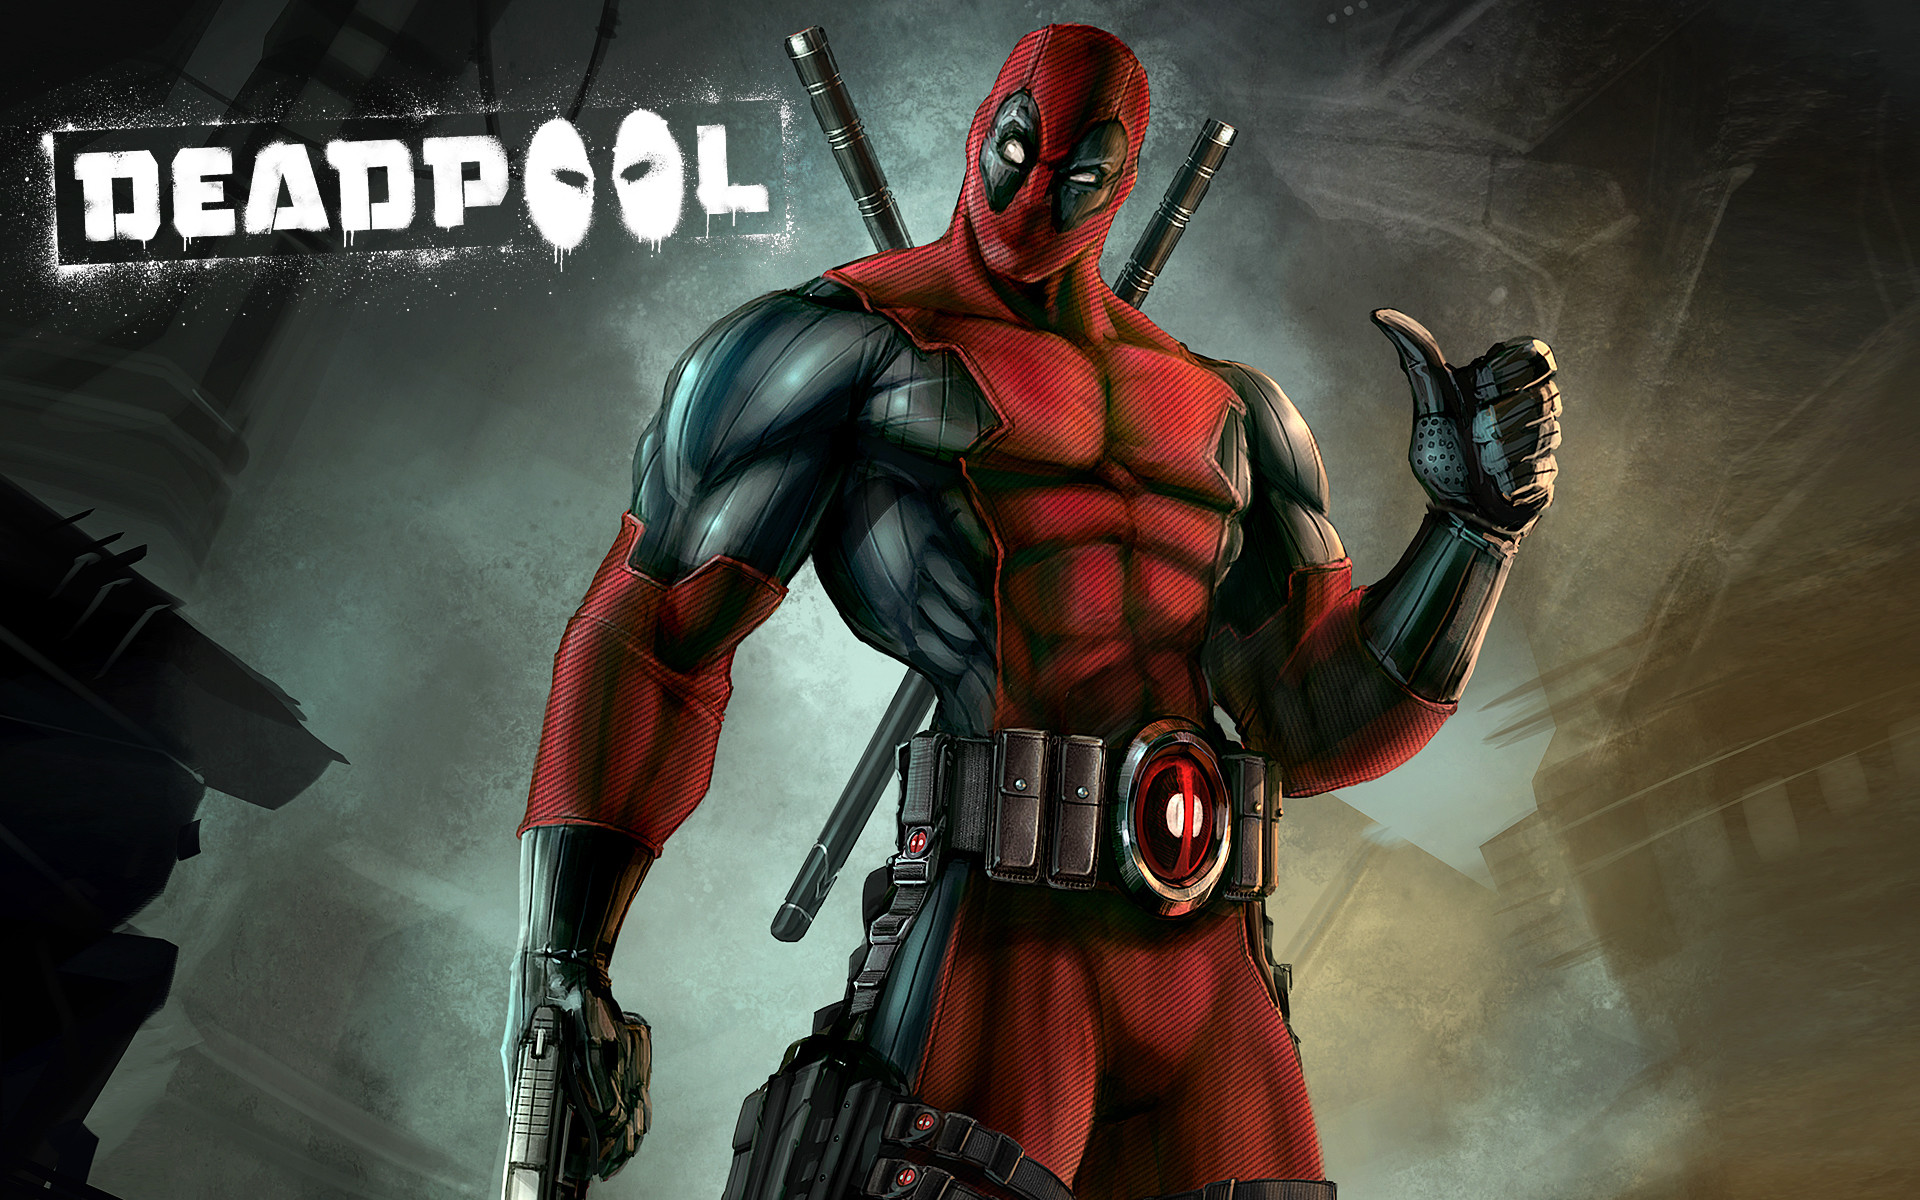 1920x1200 Heroes comics Deadpool superhero Games wallpaper background